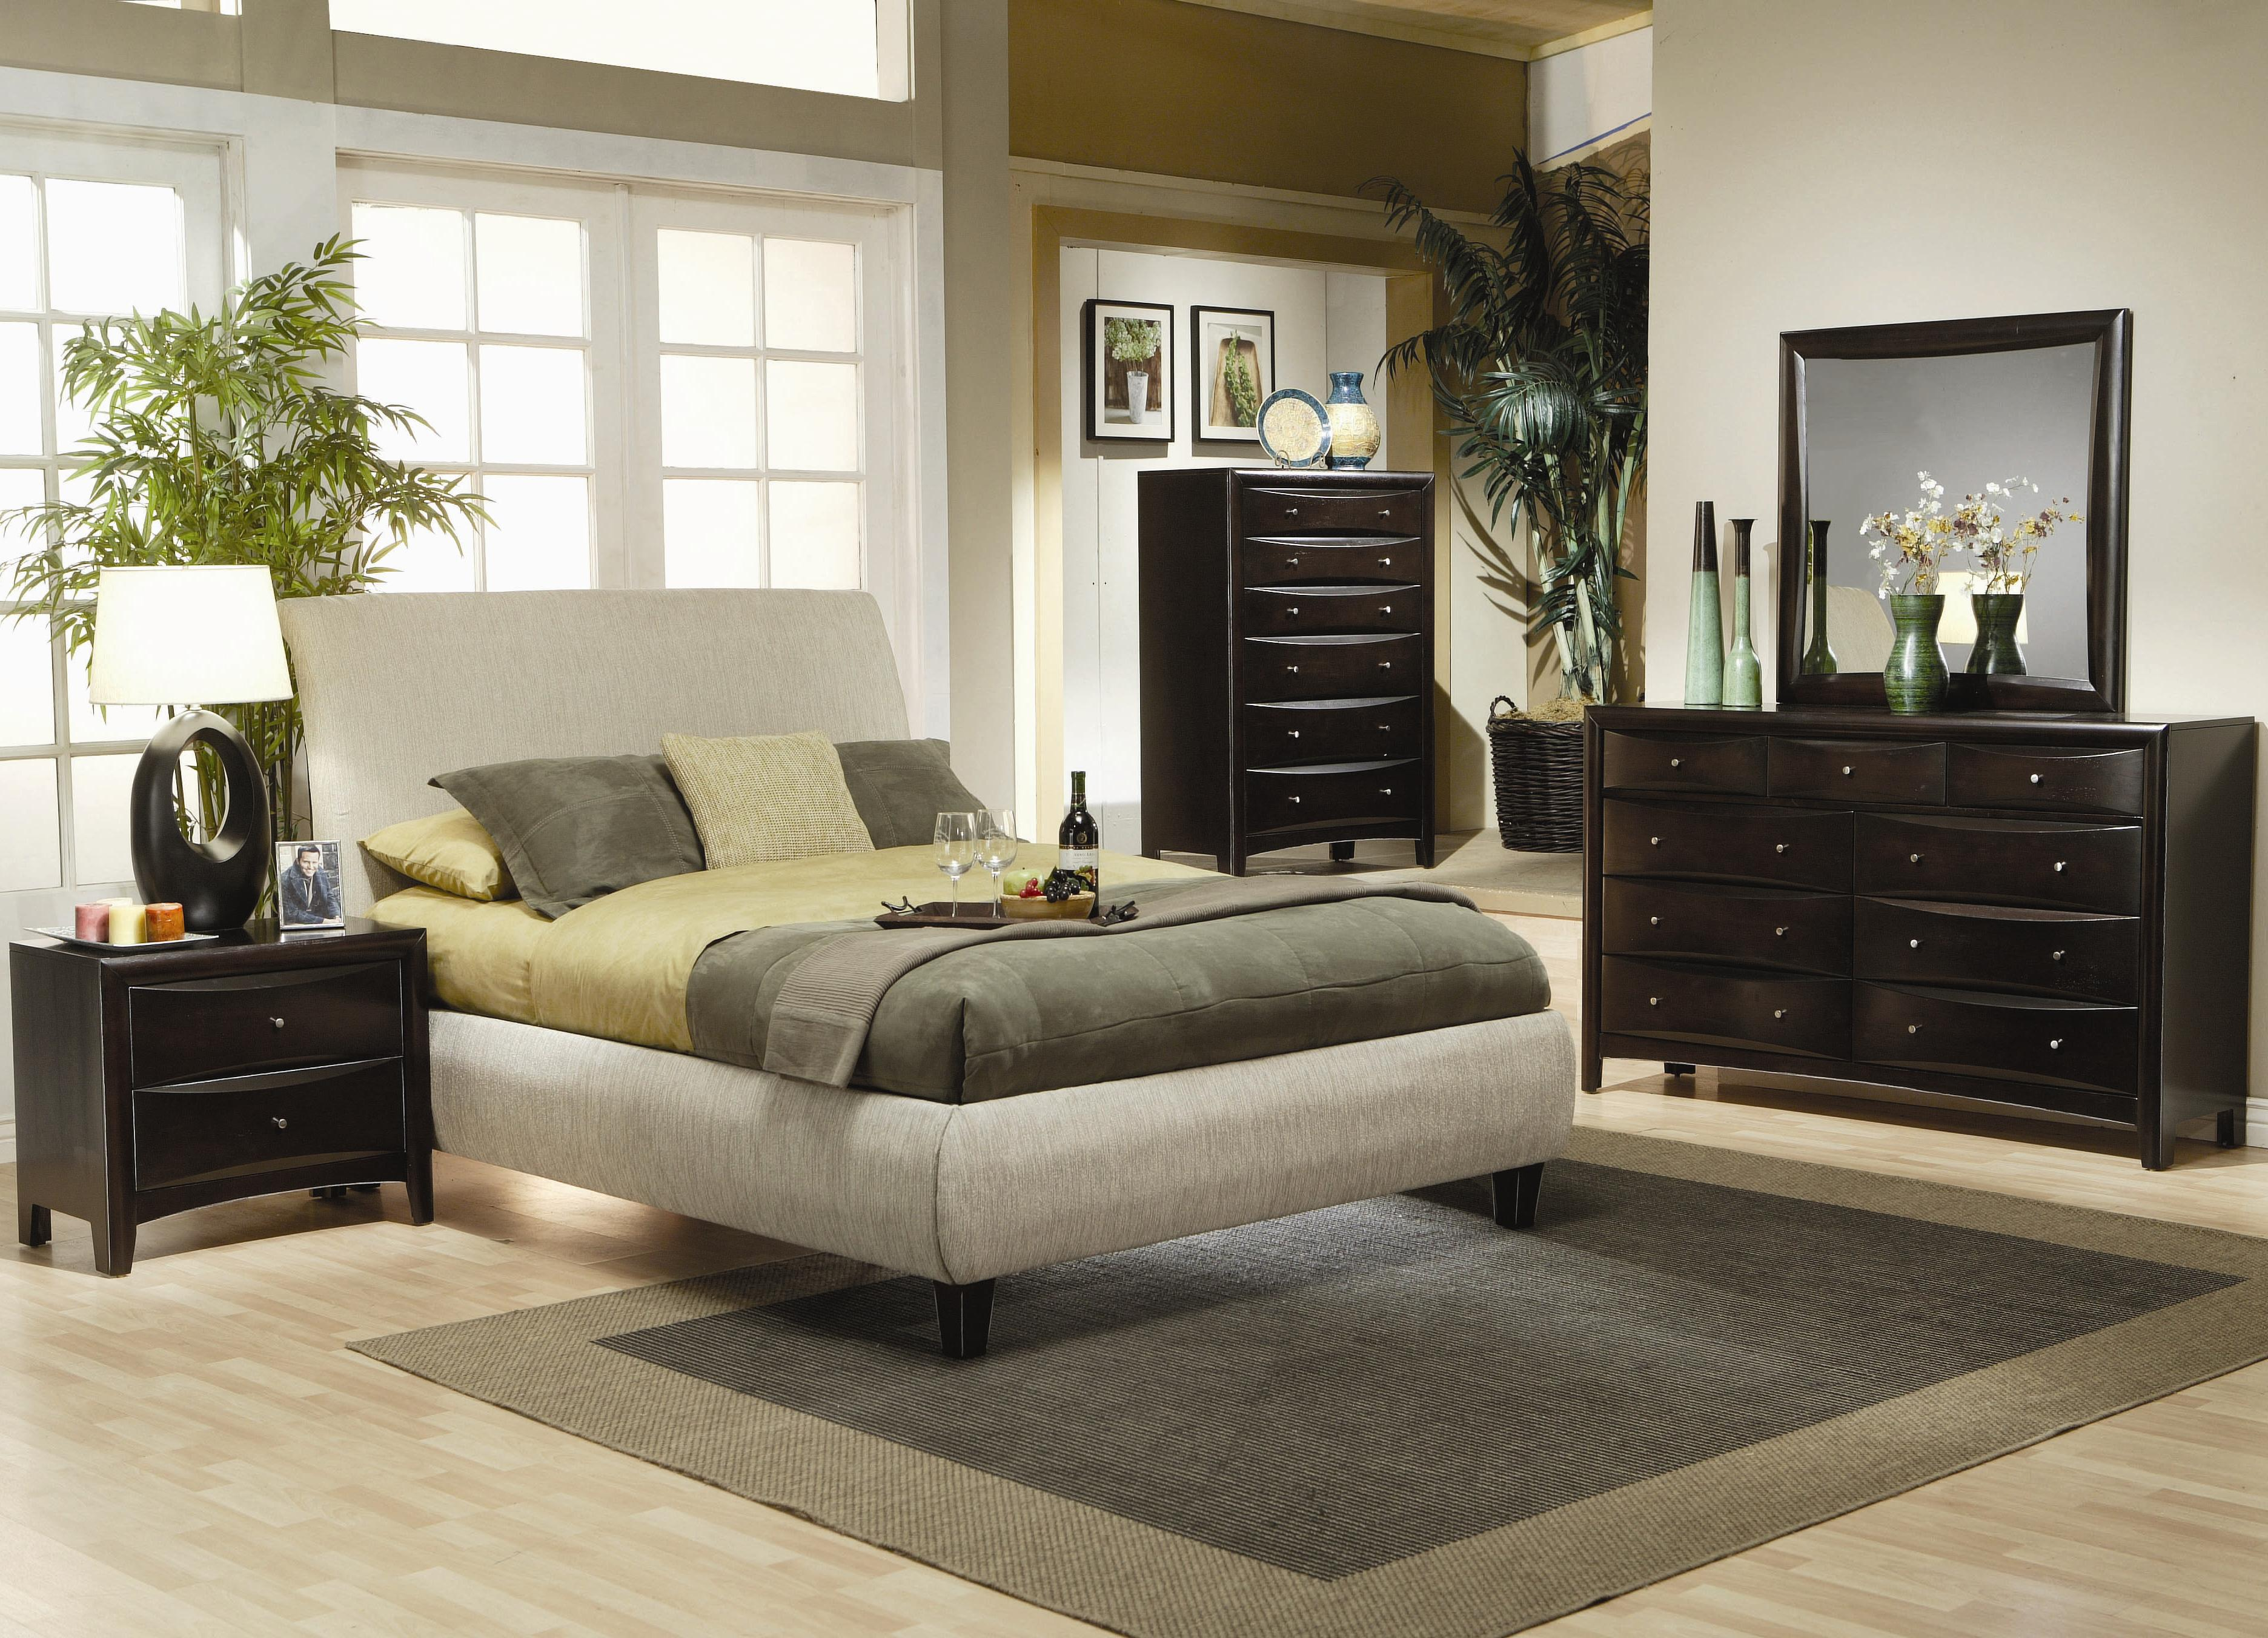 Phoenix 4pc Bedroom Set Furniture Mattress Los Angeles And El Monte